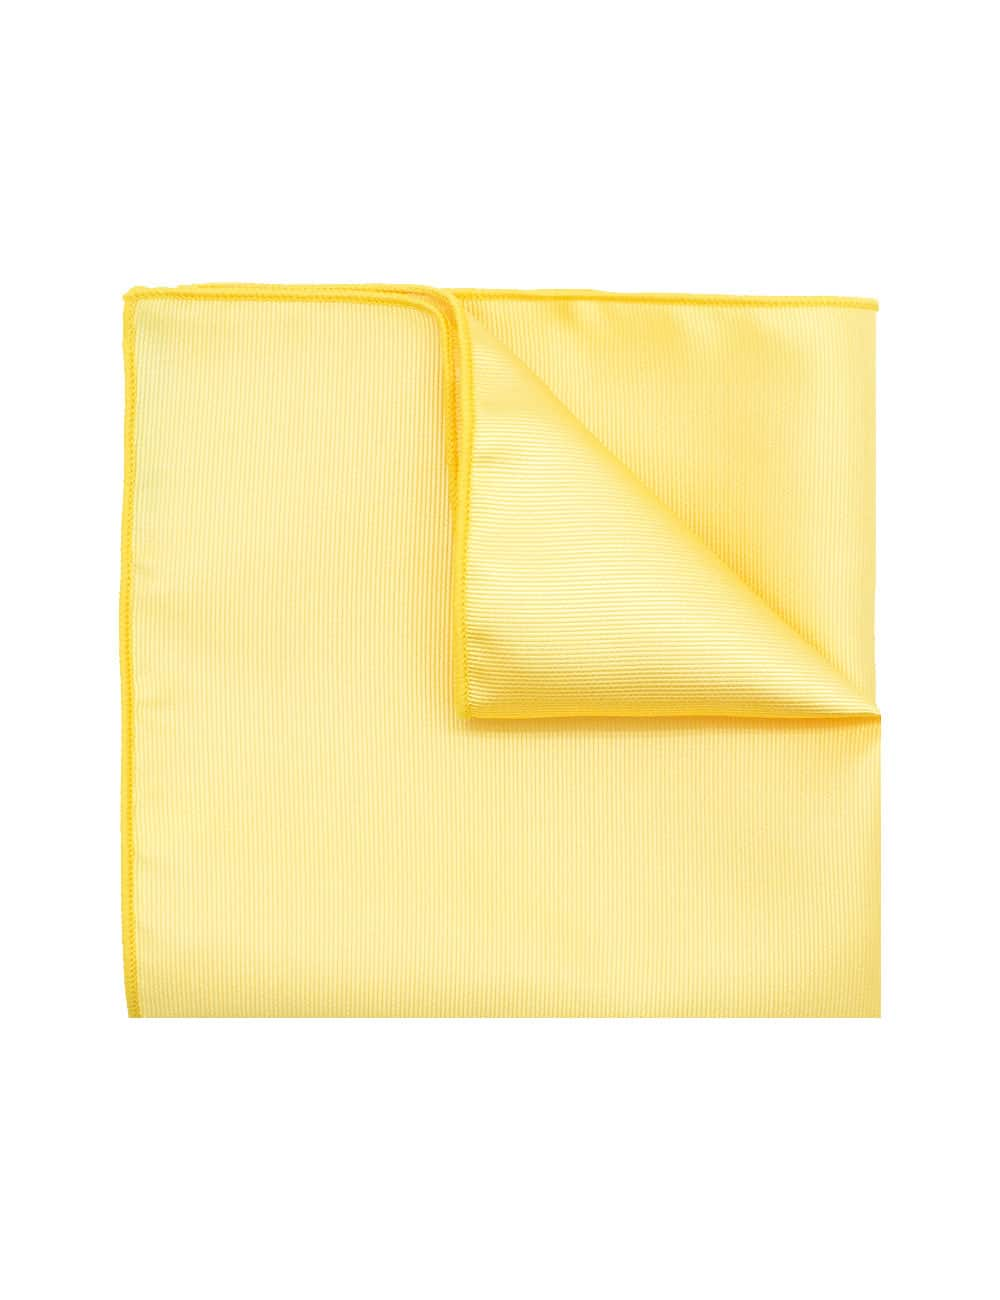 Solid Sunset Gold Woven Pocket Square PSQ25.7